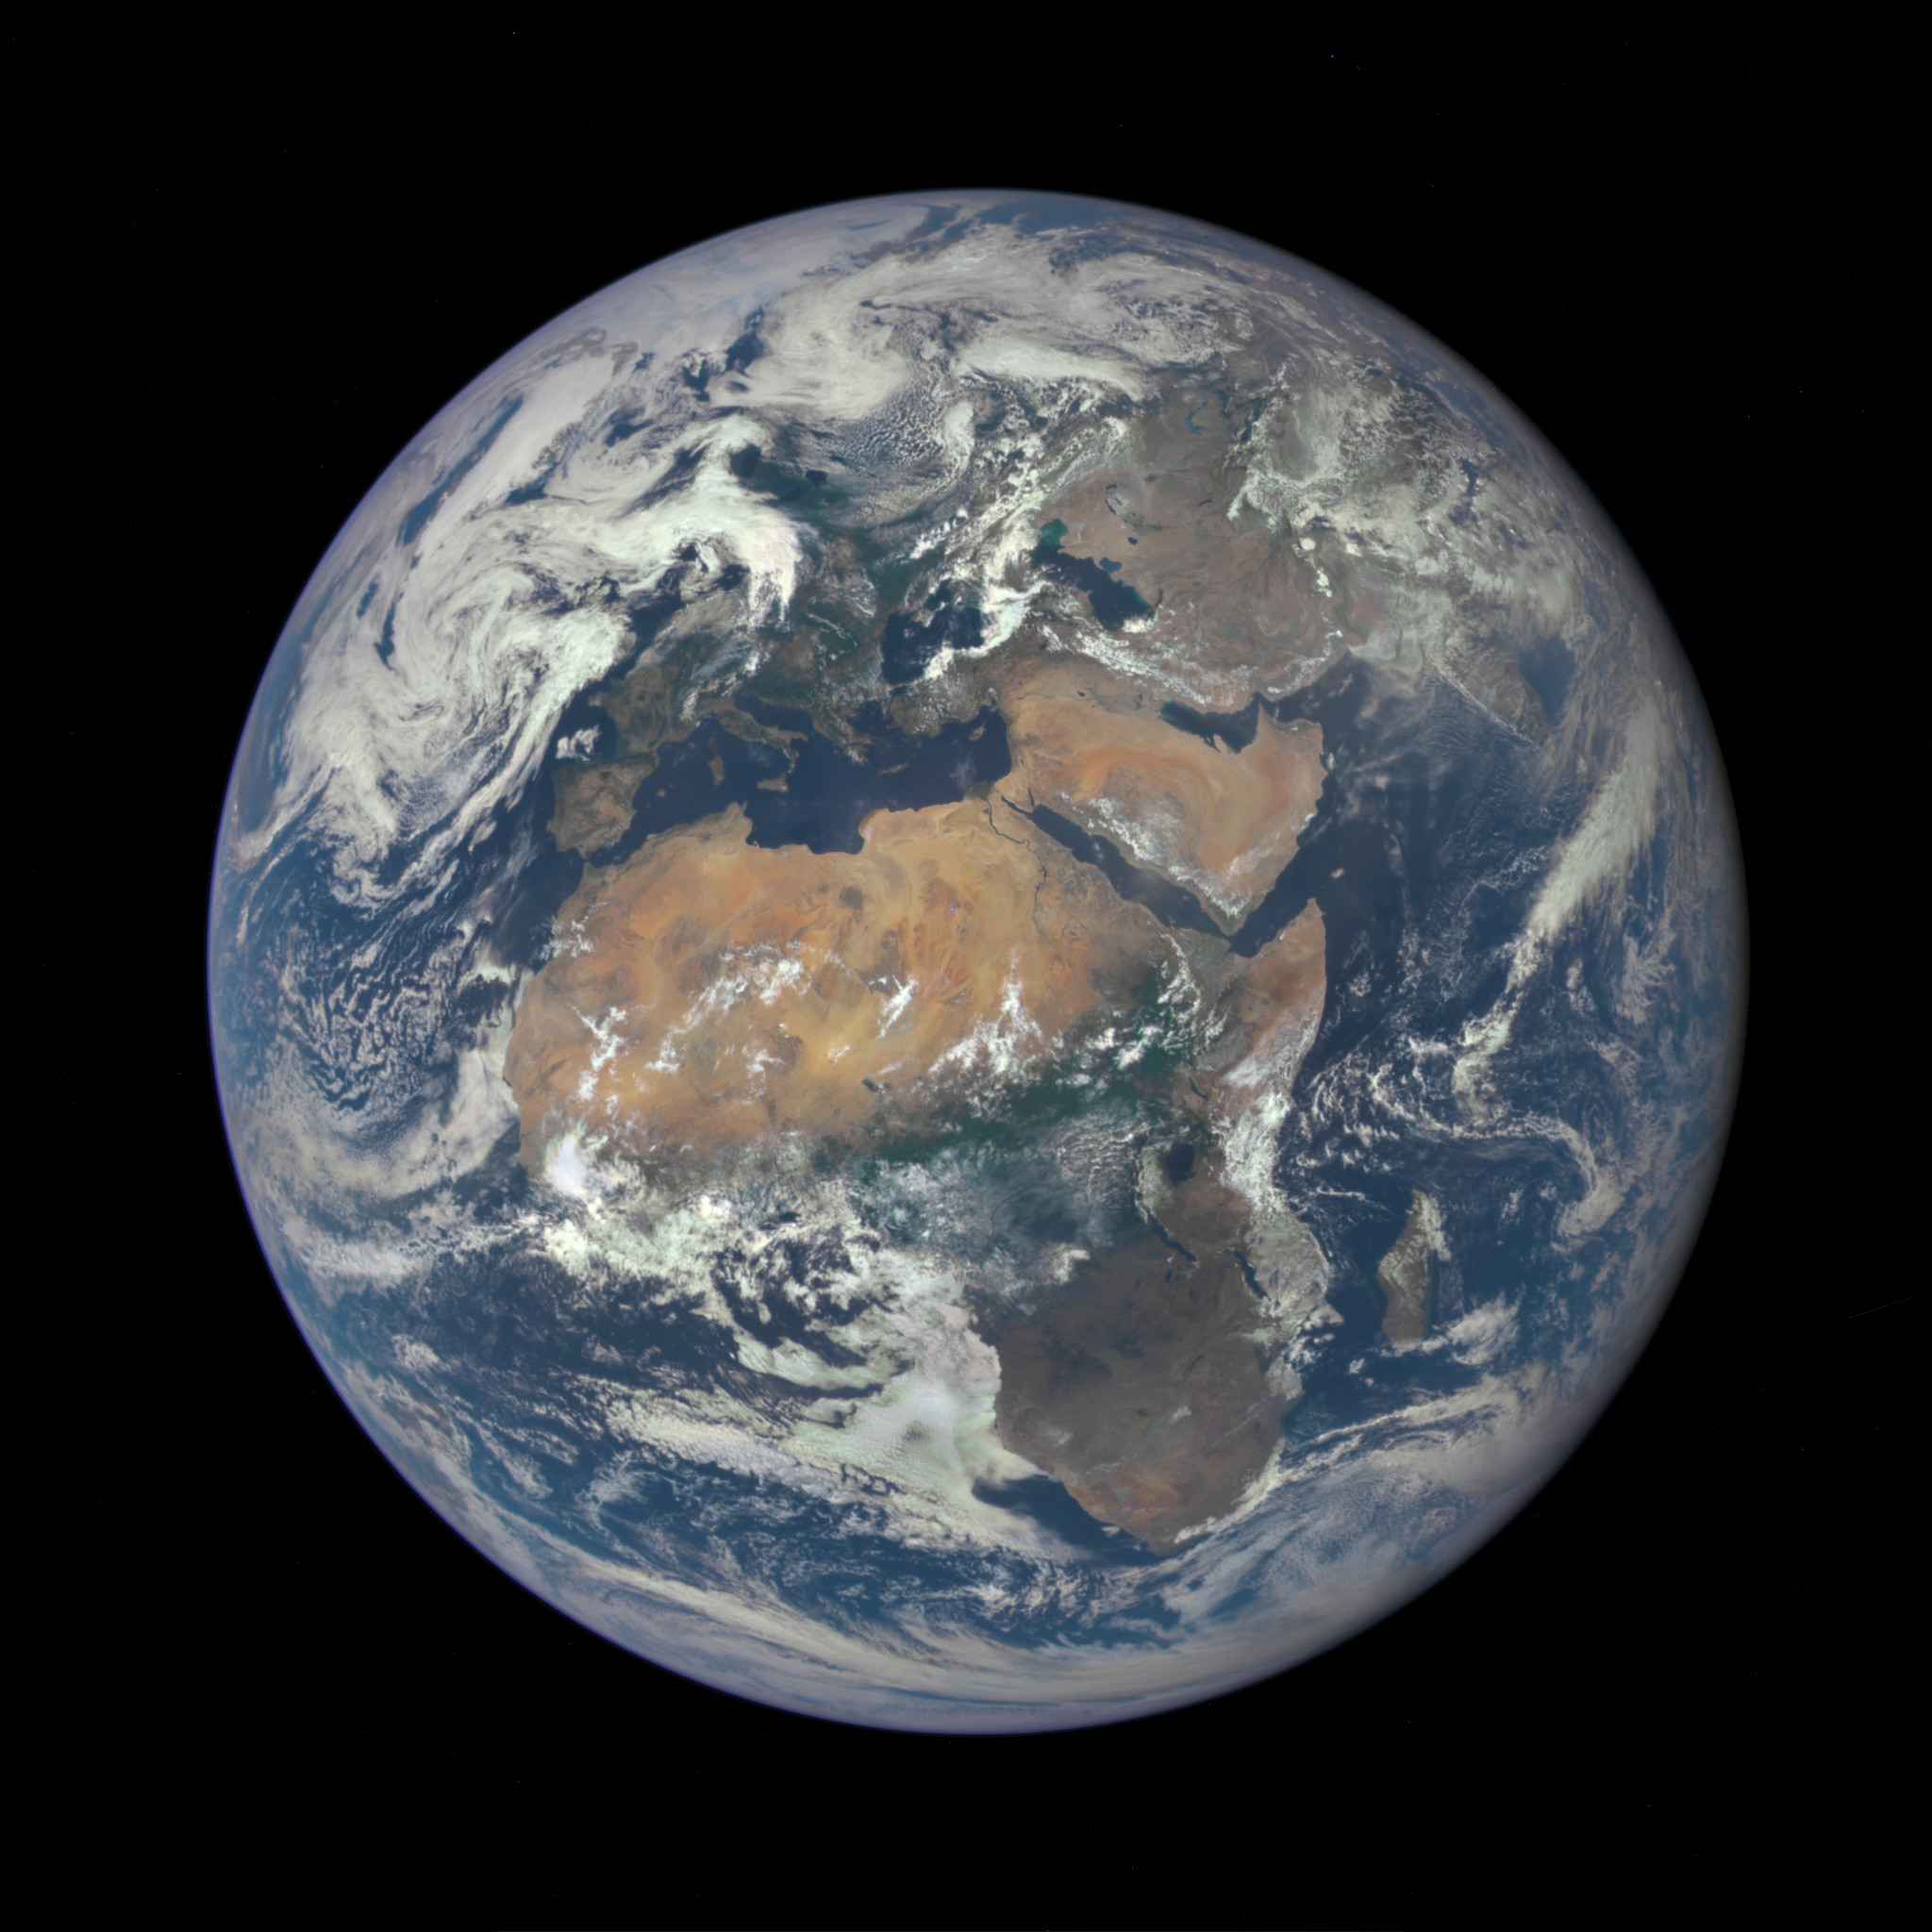 Africa is front and center in this image of Earth taken by a NASA camera on